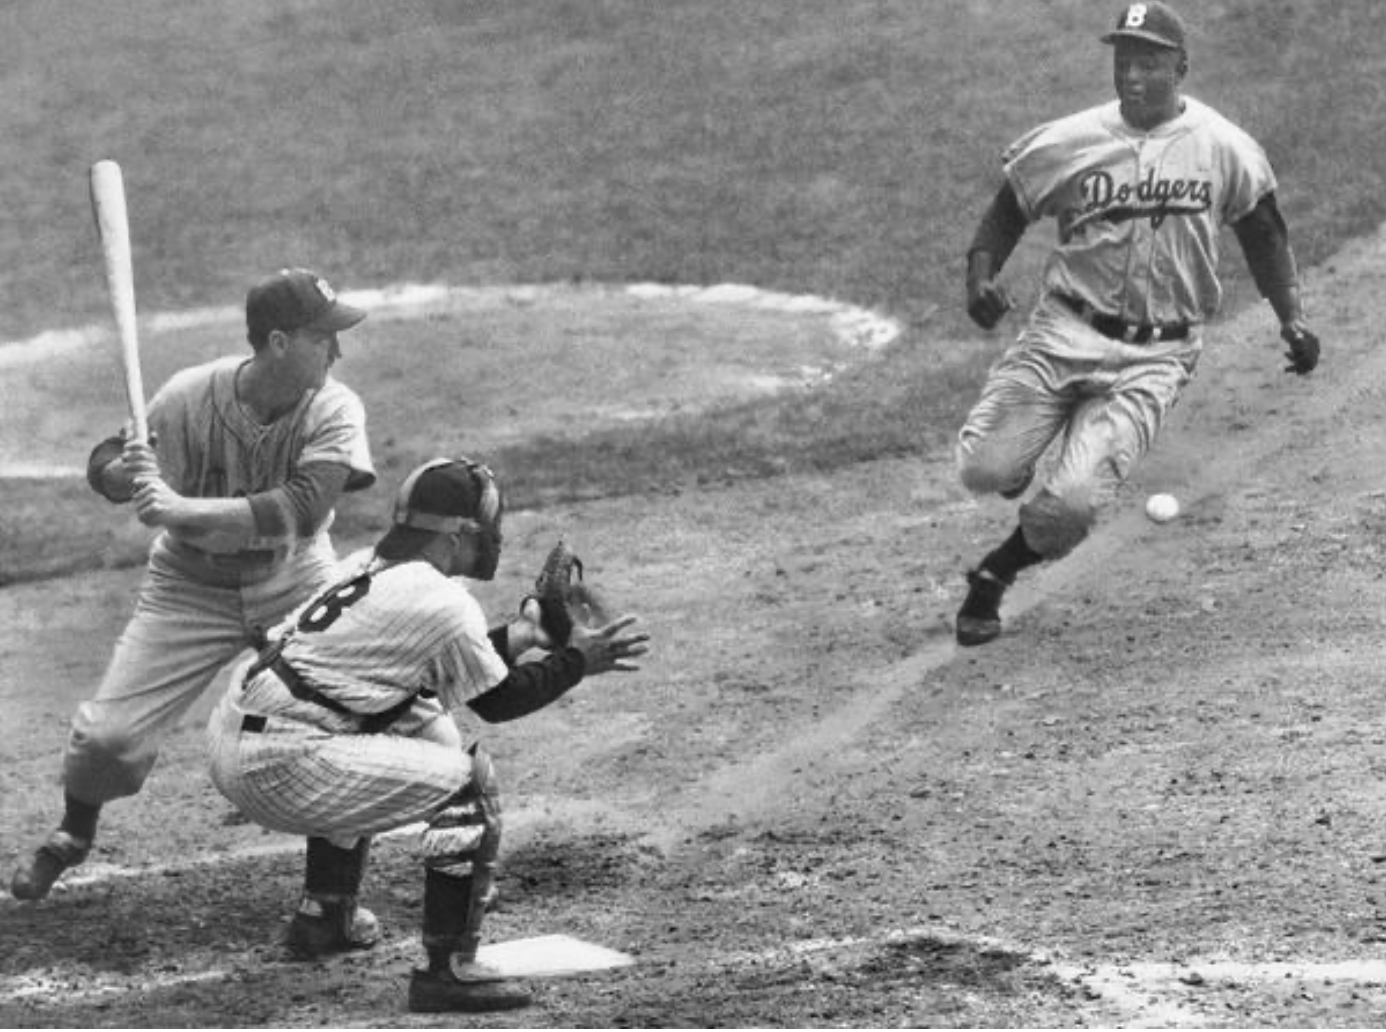 Robinson stealing home in the 1955 World Series. The intensity the Jackie played with garnered the respect of players around the league.